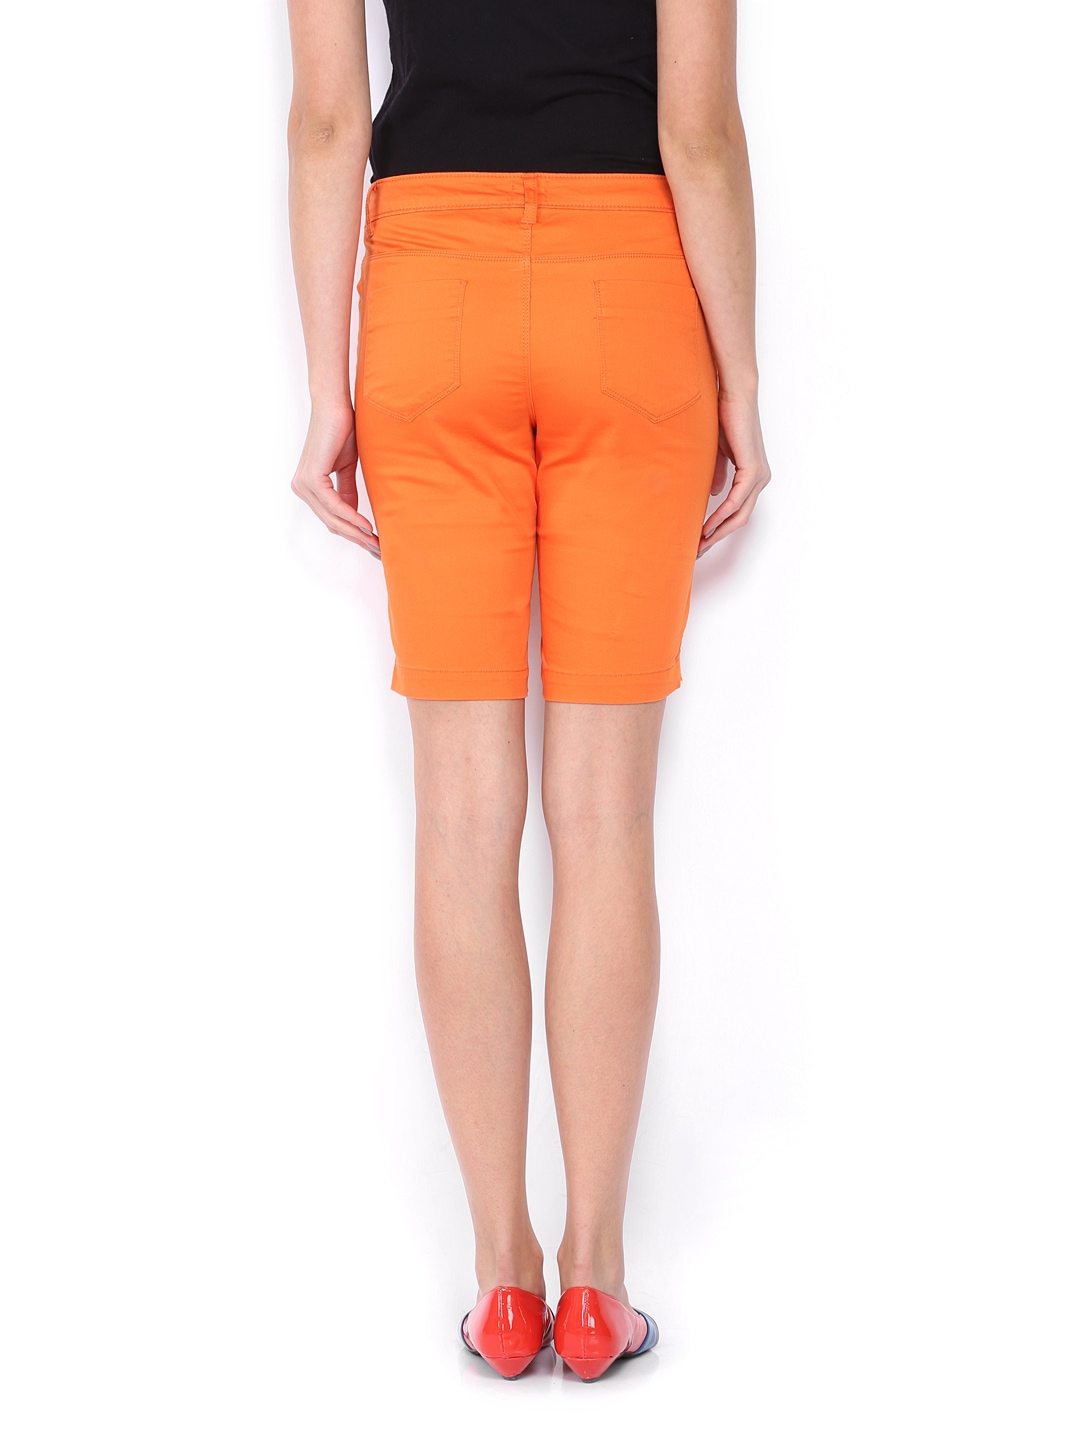 Find your adidas Women - Orange - Shorts at puraconga.ml All styles and colors available in the official adidas online store.